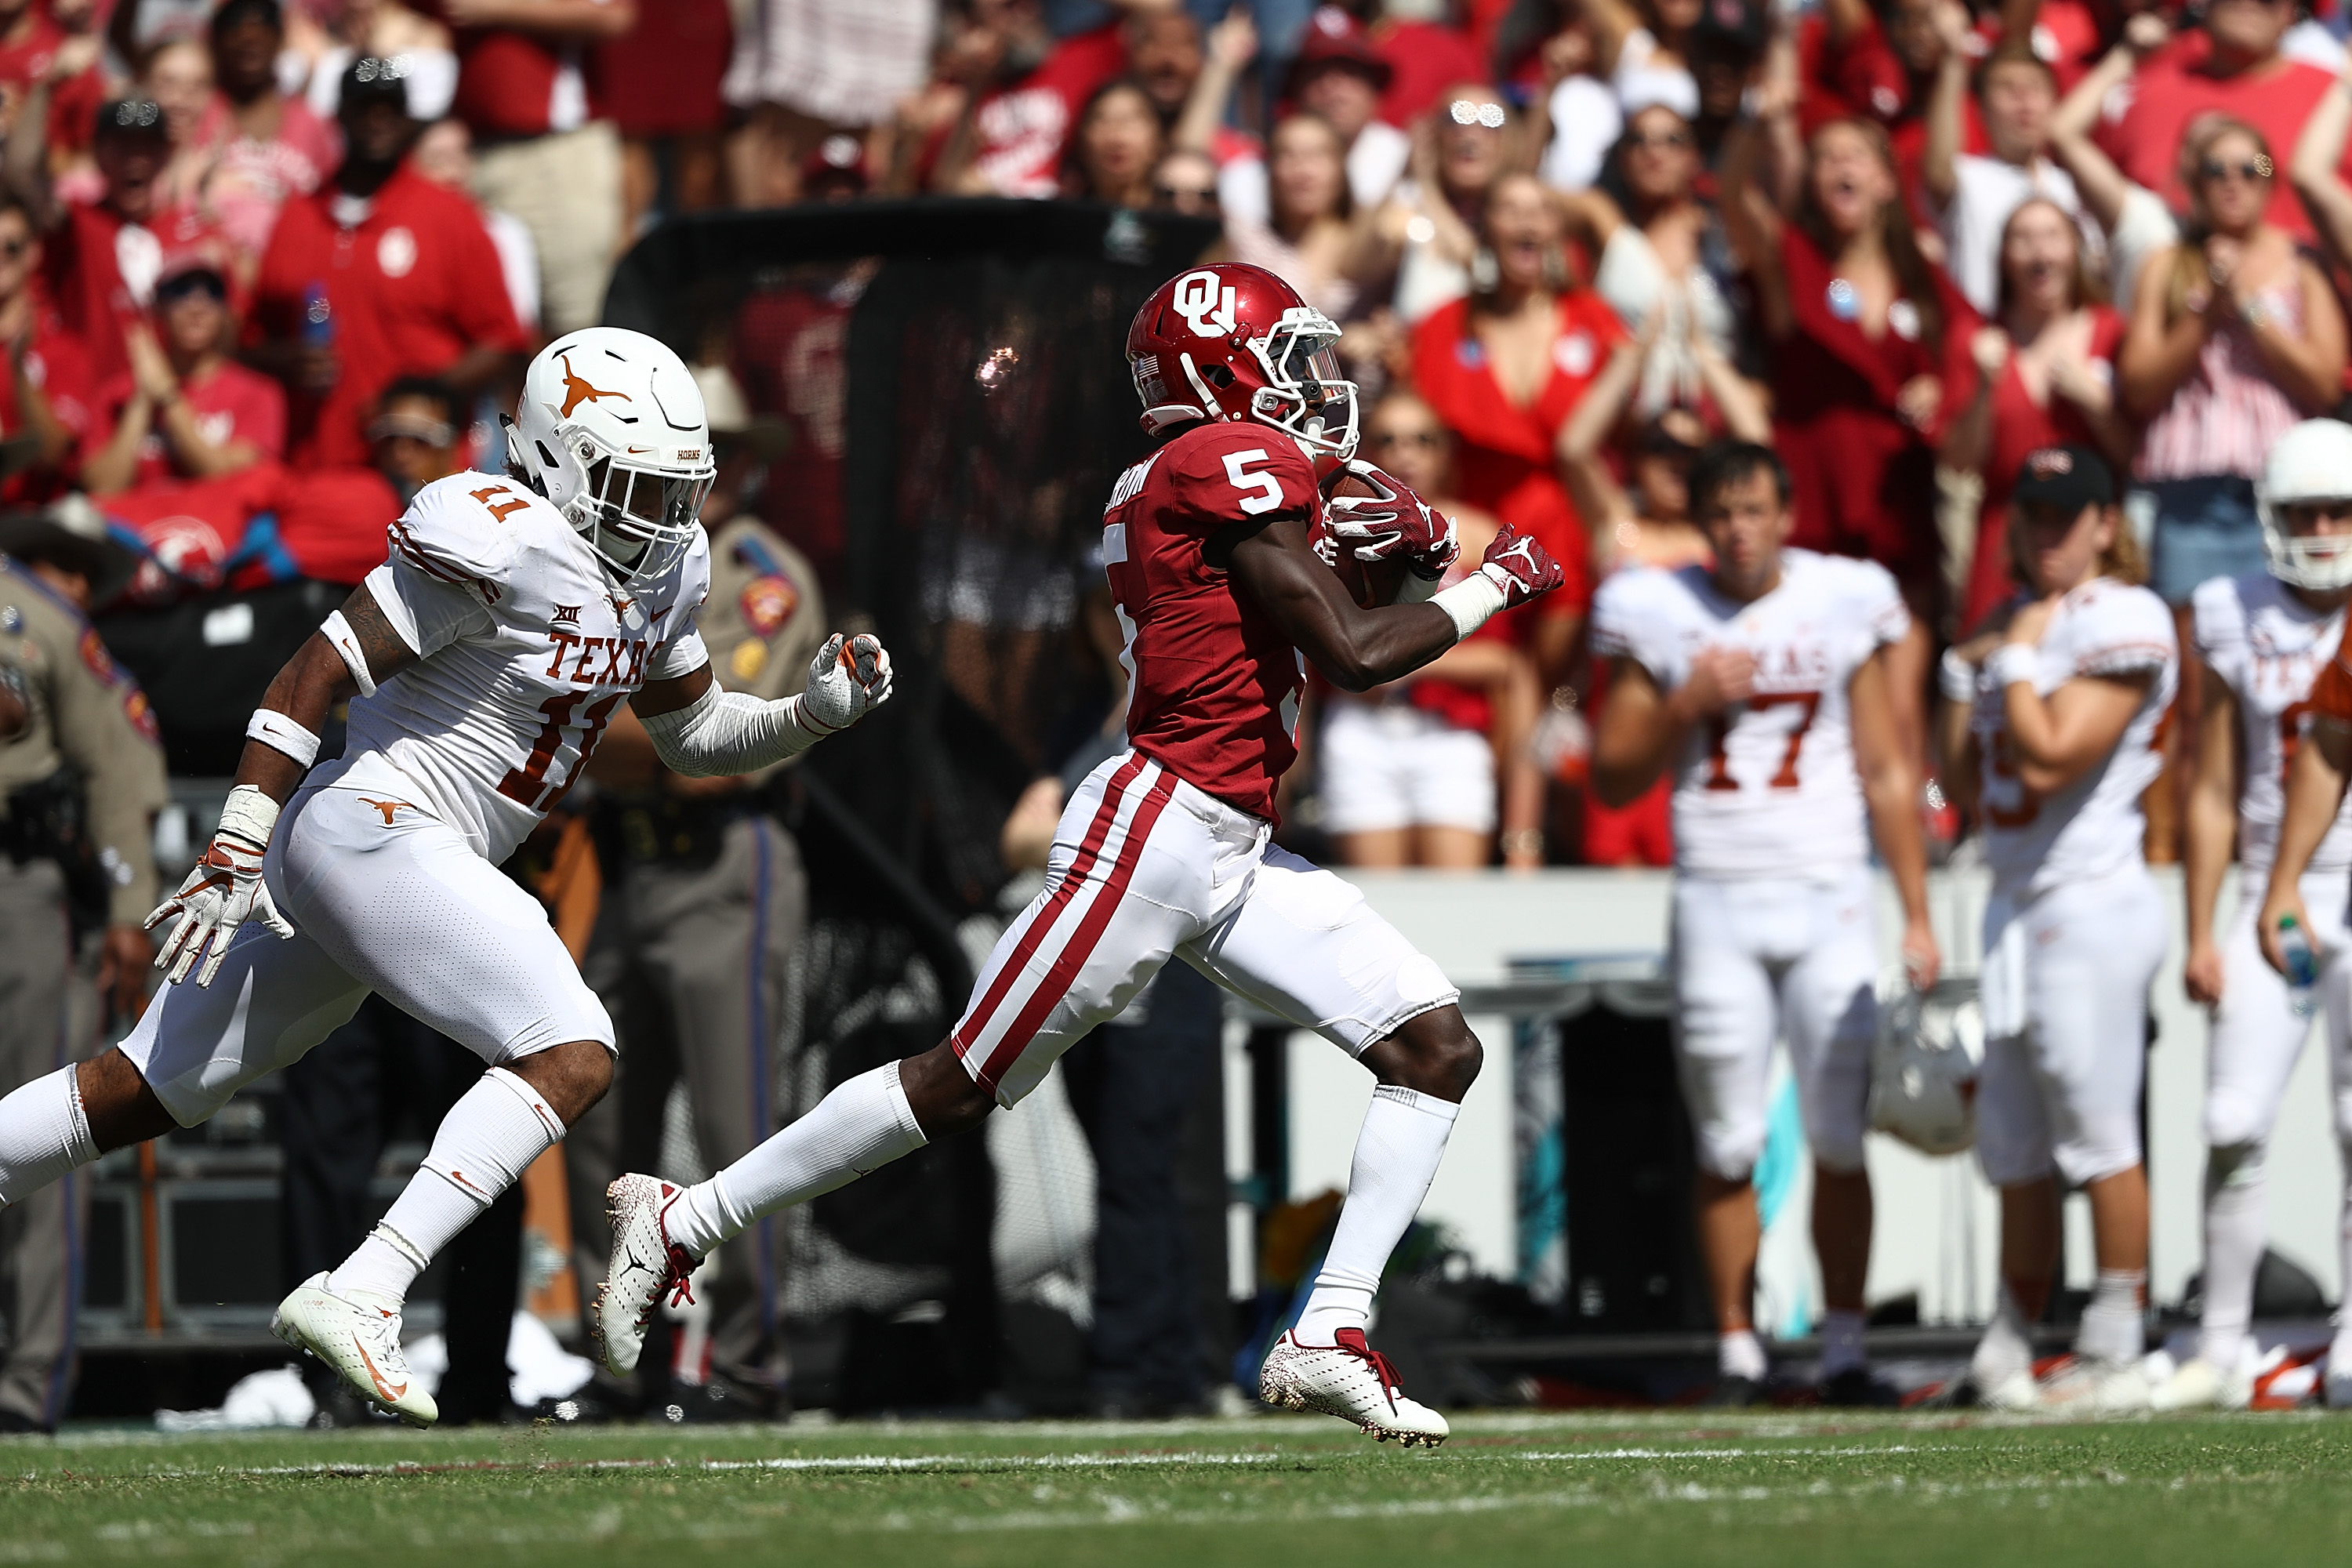 568fffb0bfd6a8 Crimson And Cream Machine Archives - Oklahoma Sooners Football - Page 4